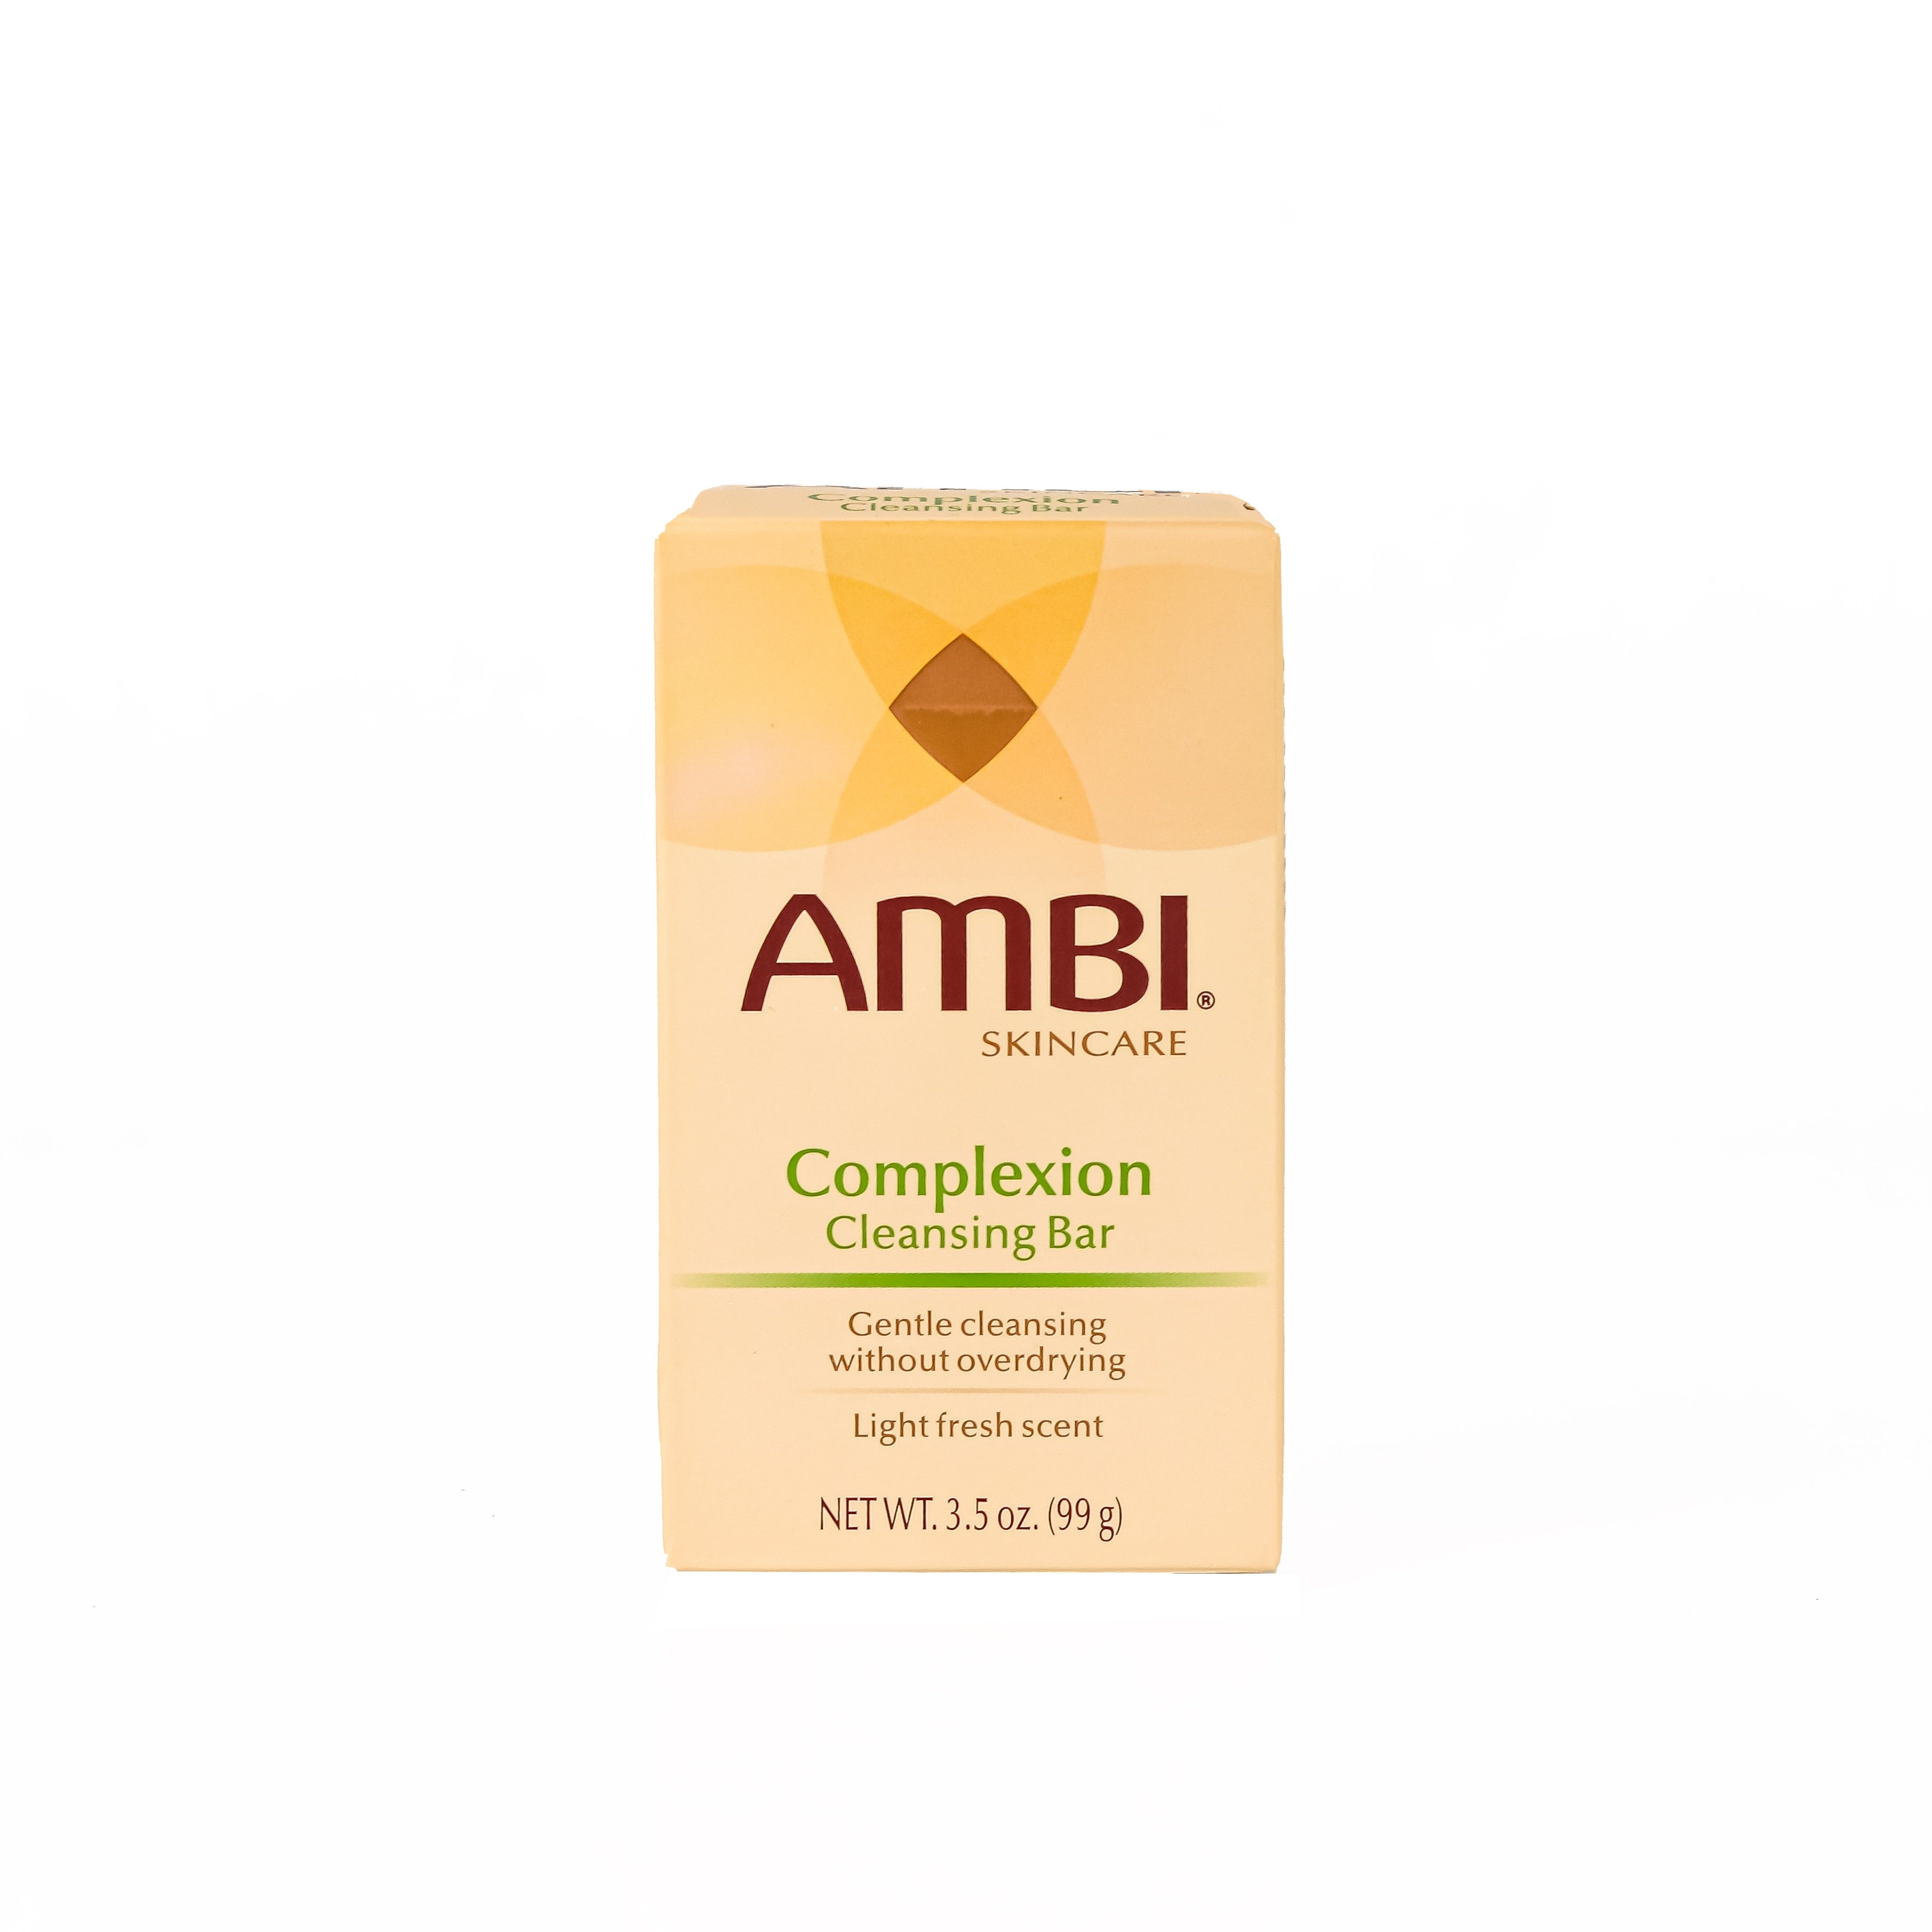 February 2021 CURLBOX Skin featuring Ambi Skincare